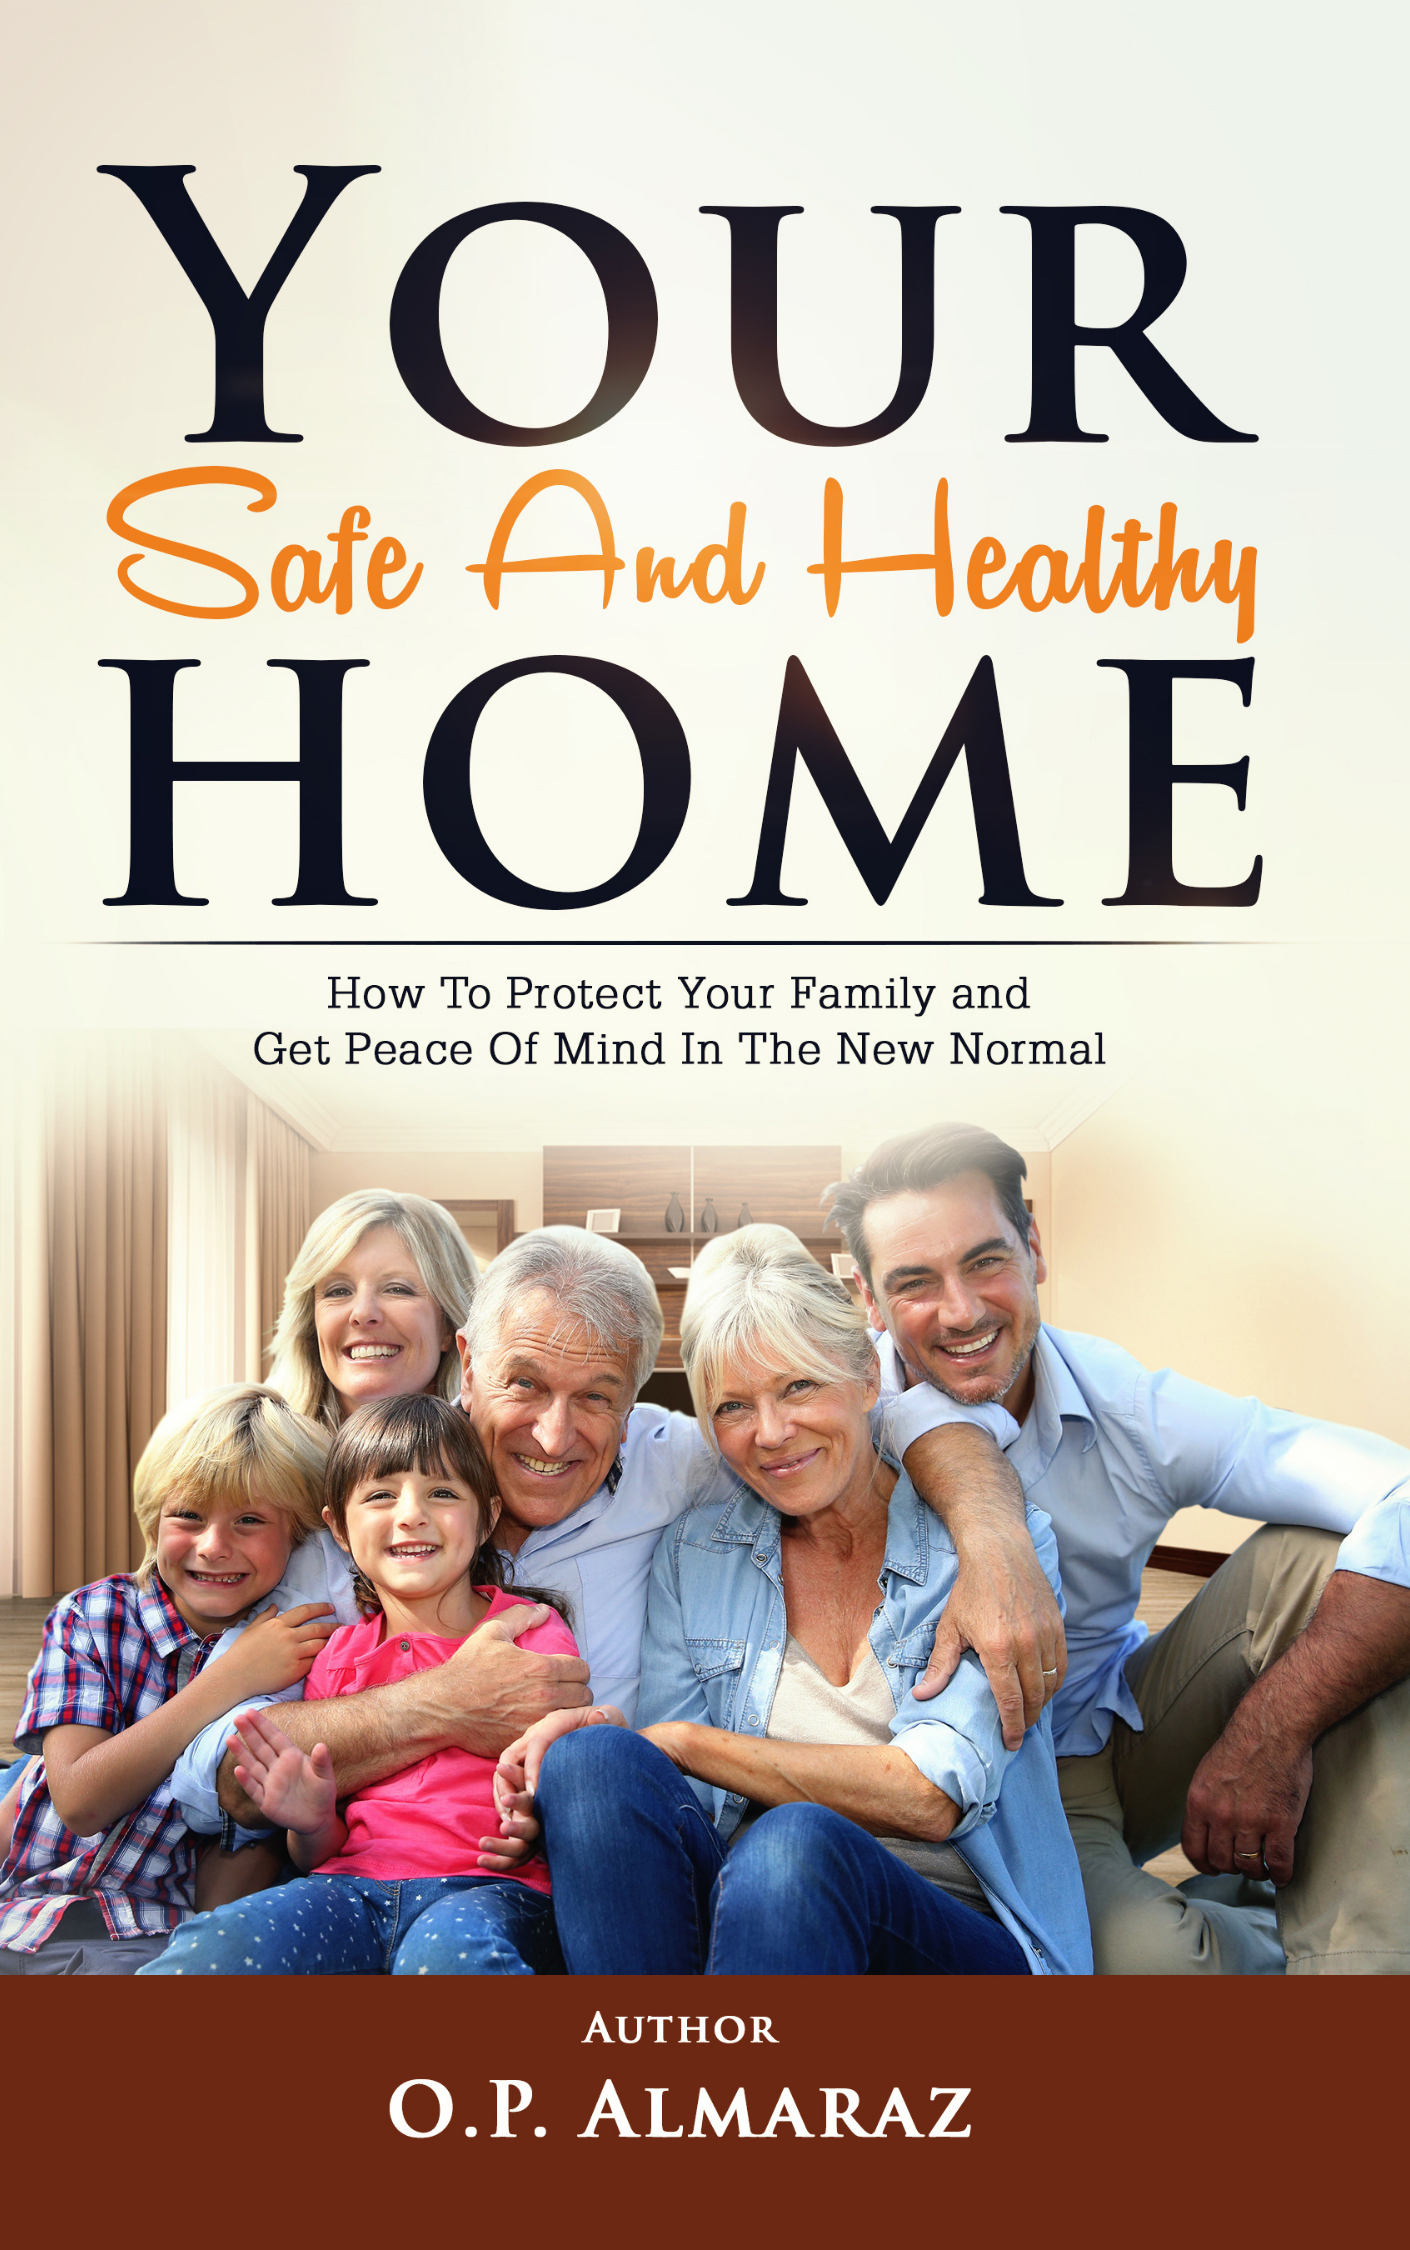 Your Safe and Healthy Home book cover - by O.P Almaraz